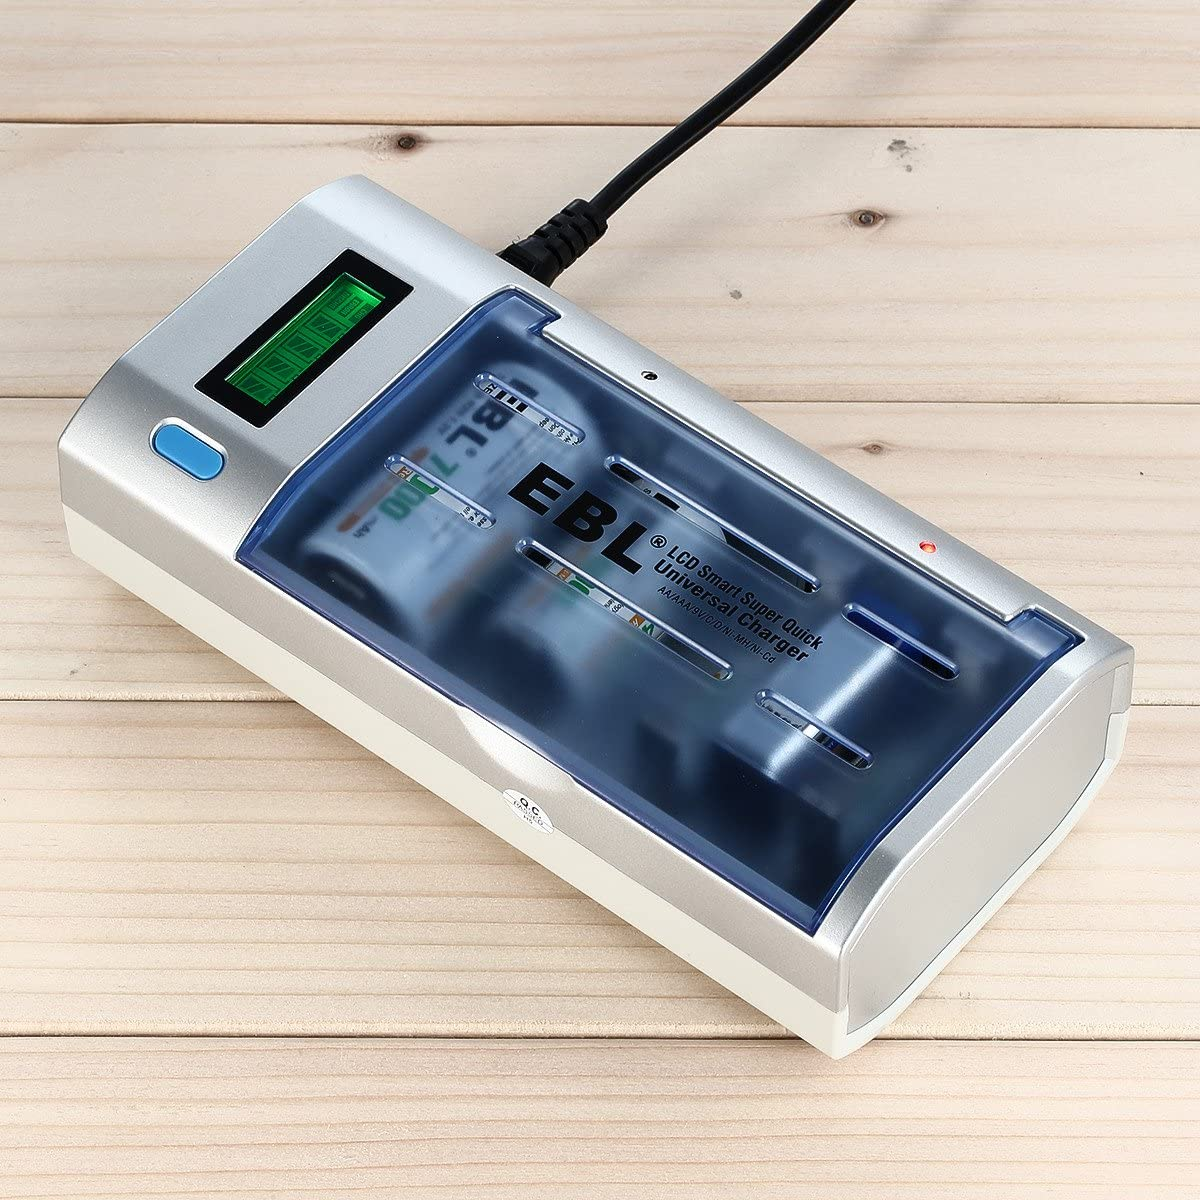 ebl-universal-smart-battery-charger-closed